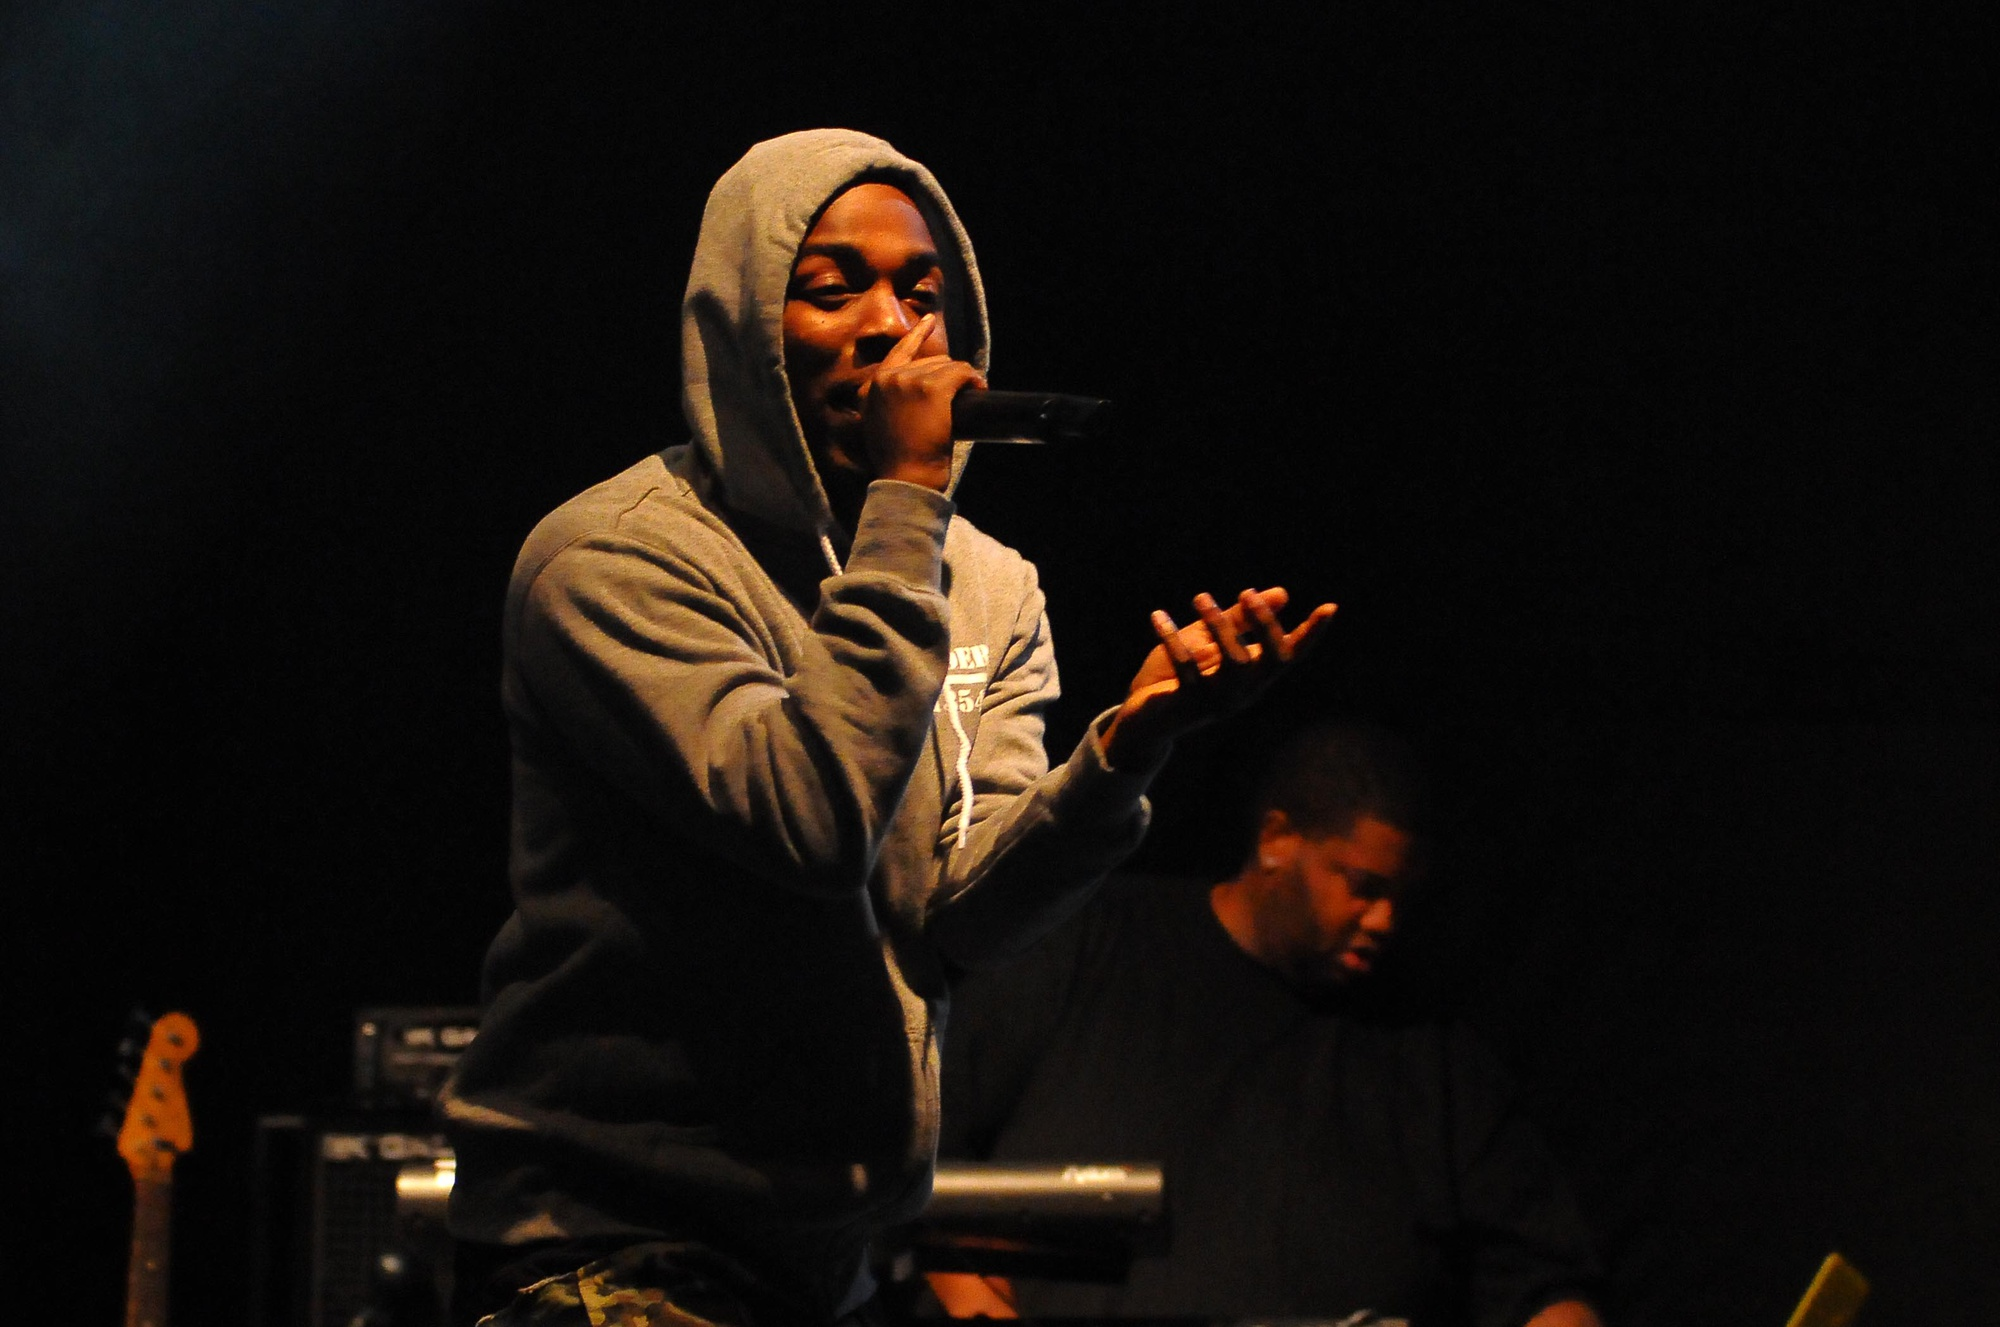 Kendrick Lamar keeps the crowd energetic even after sunset on the second day of the Festival.